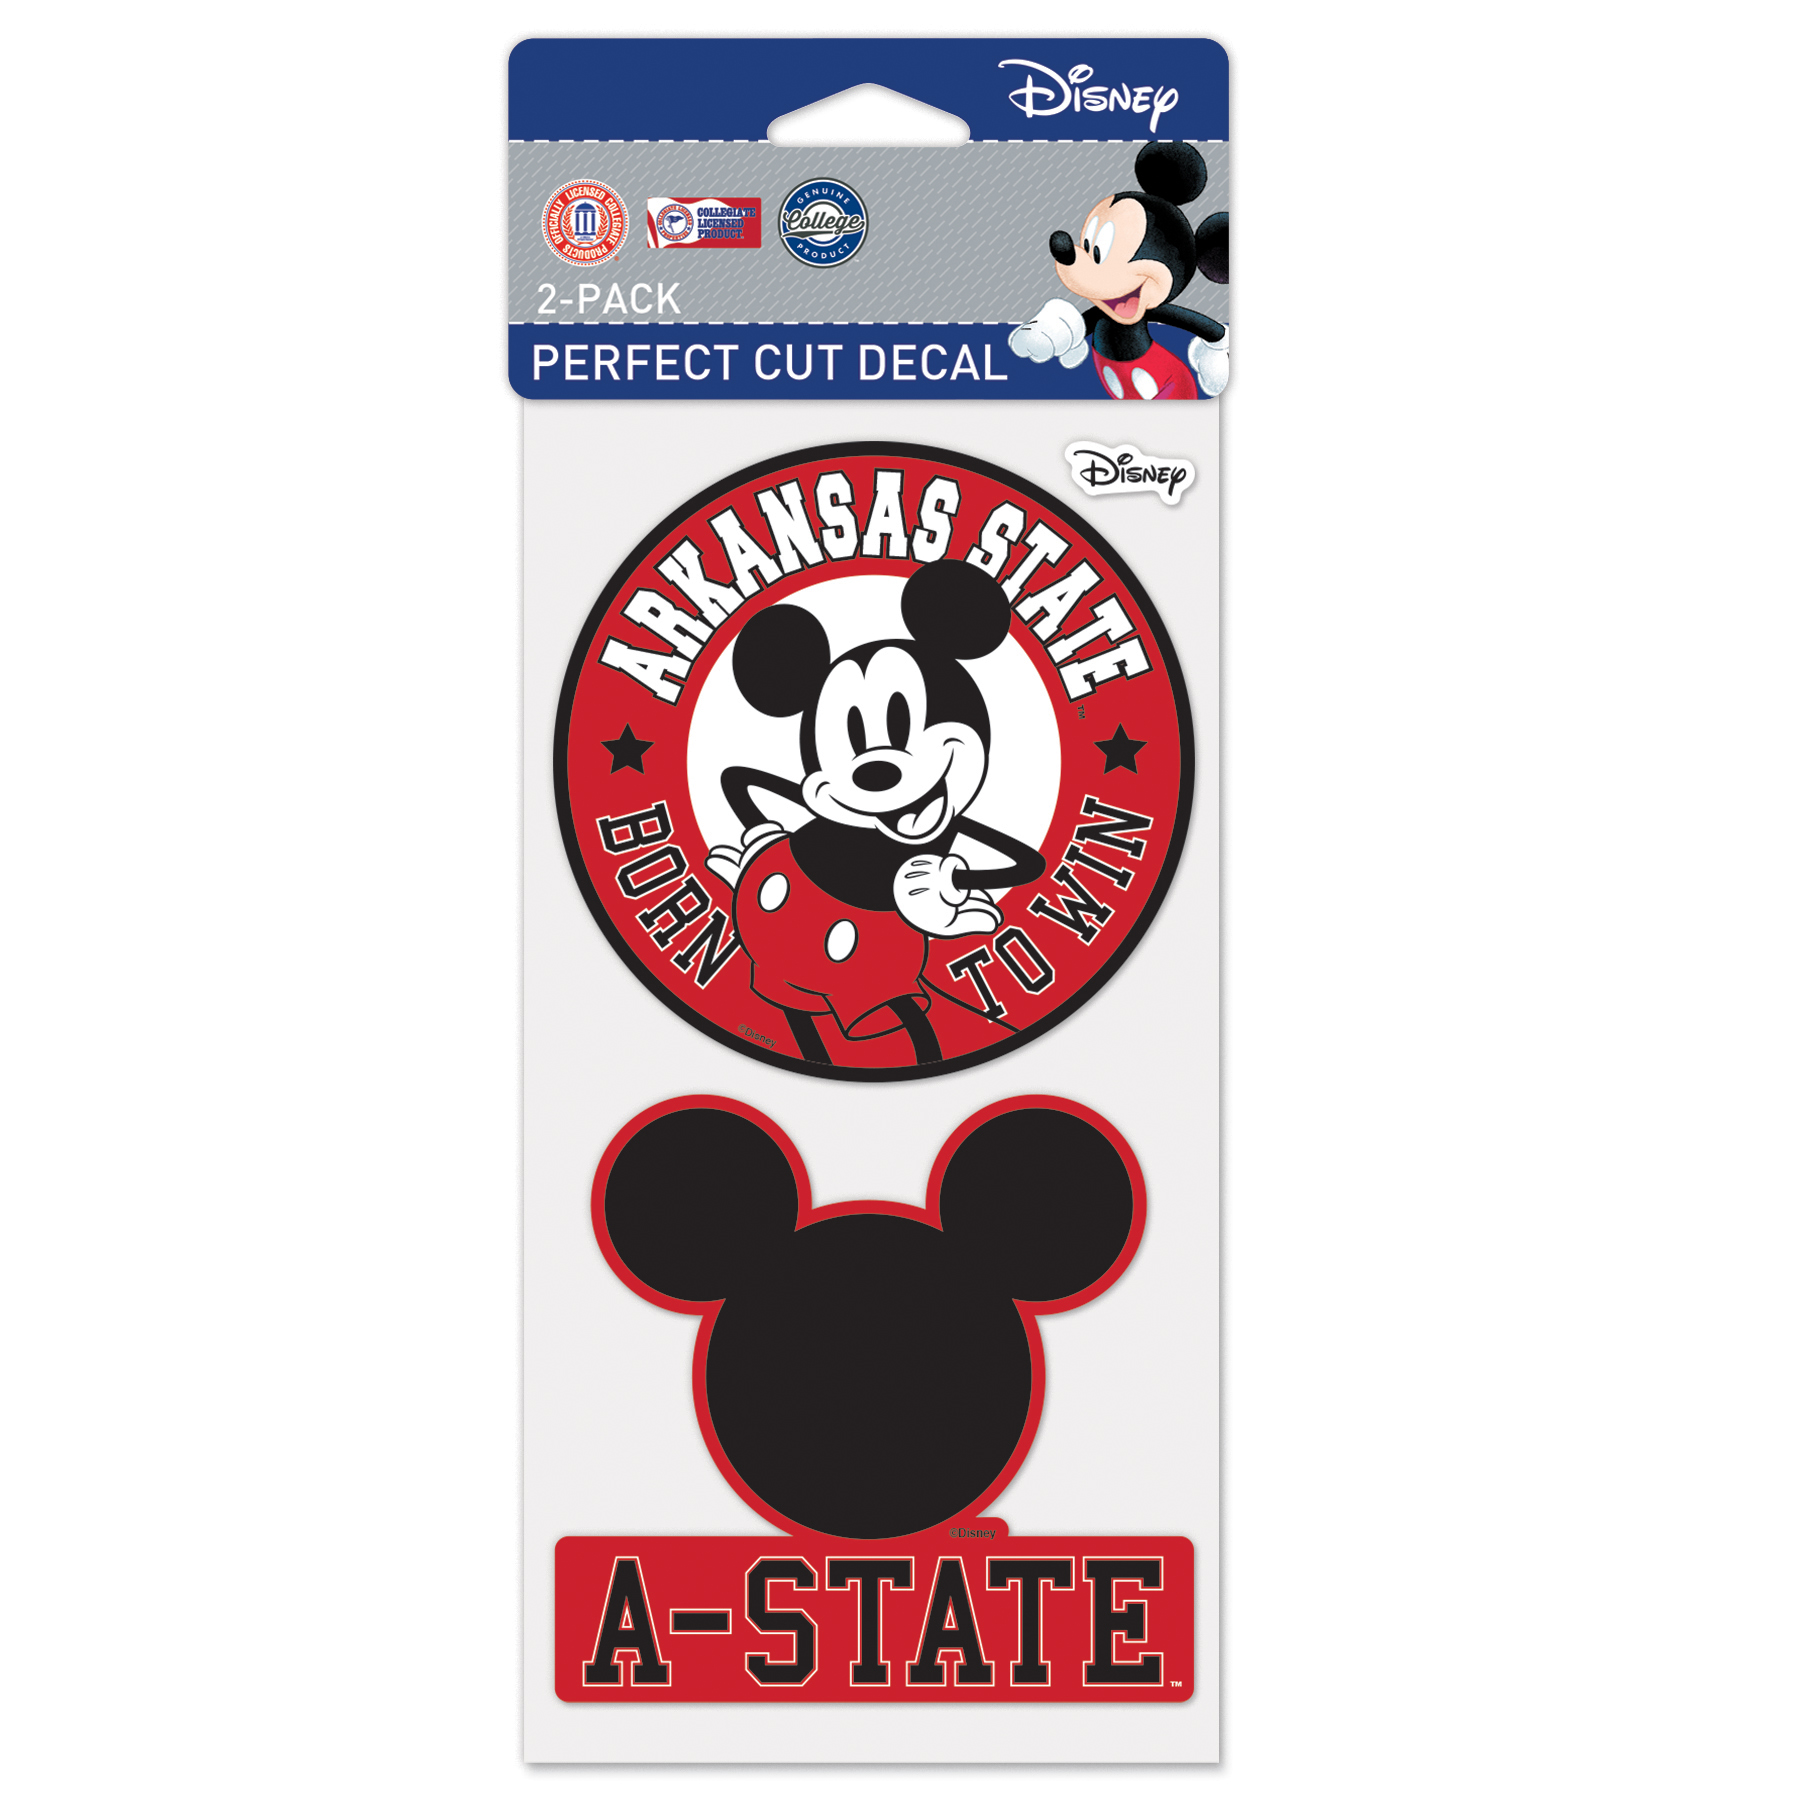 A-State & Mickey Perfect Cut Decal Set